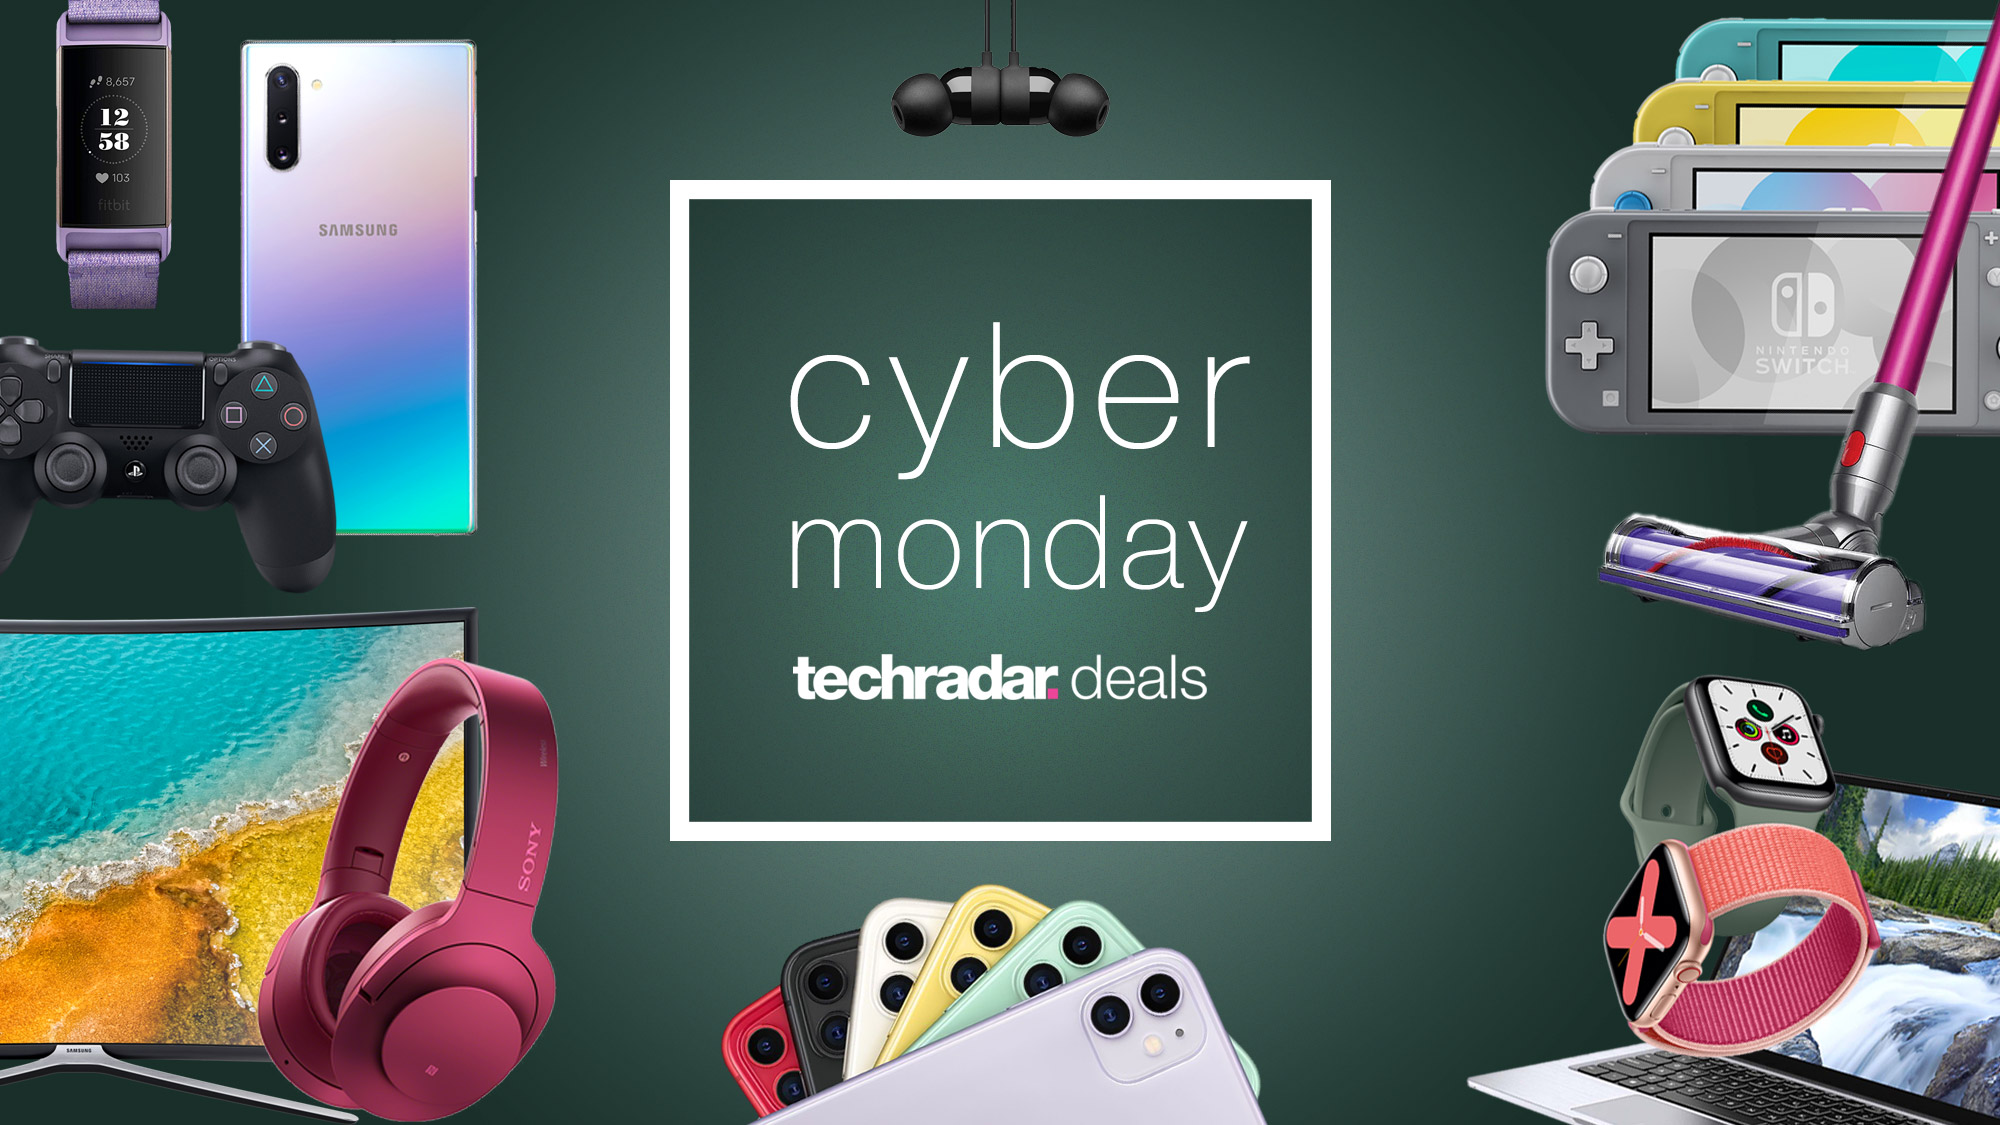 The best Cyber Monday deals extended: where to get Cyber